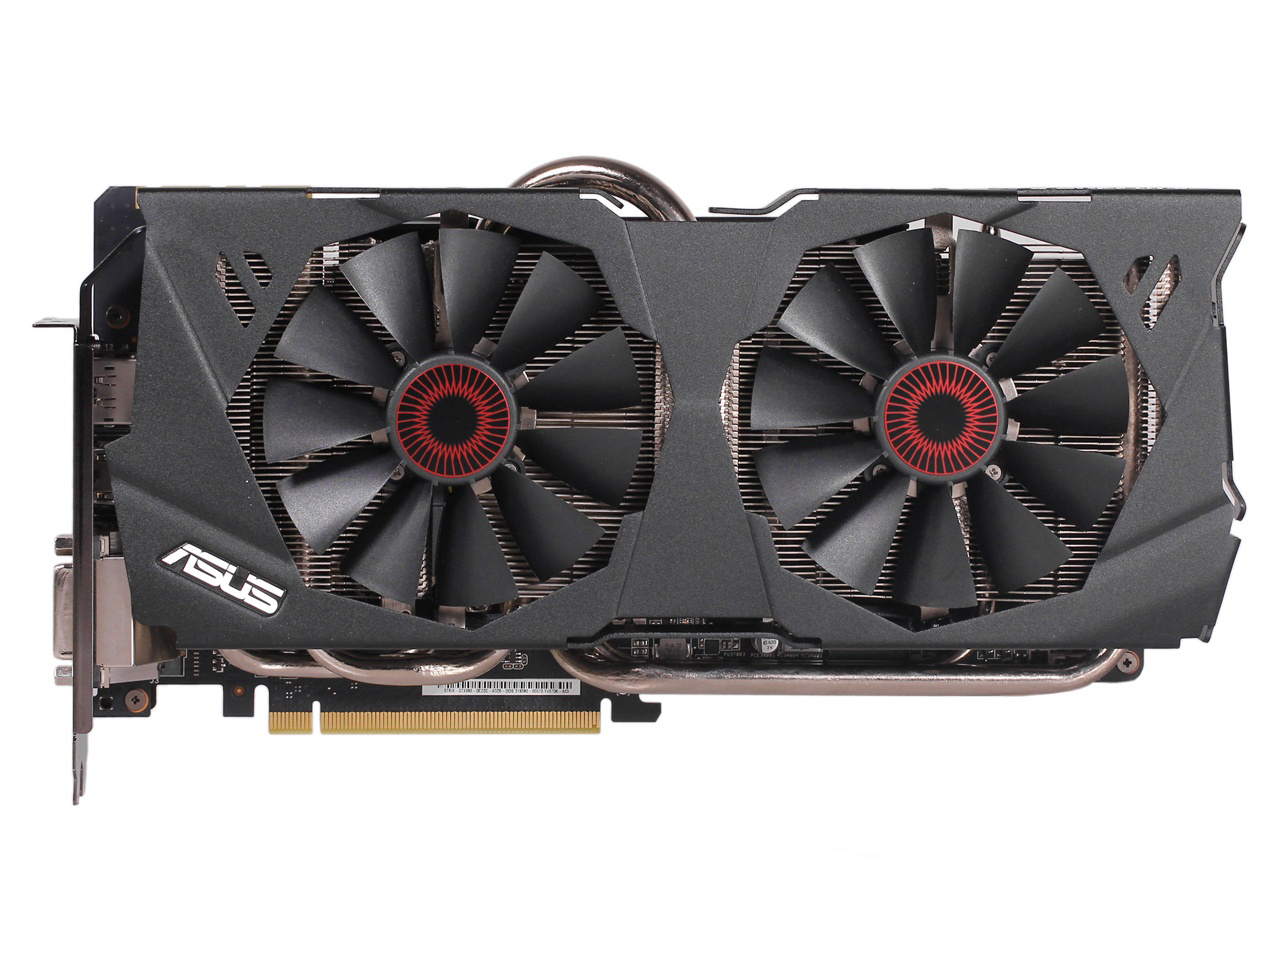 Used, ASUS GTX 980 4GB 256Bit GDDR5 Graphics Cards For NVIDIA VGA Cards Hdmi Dvi